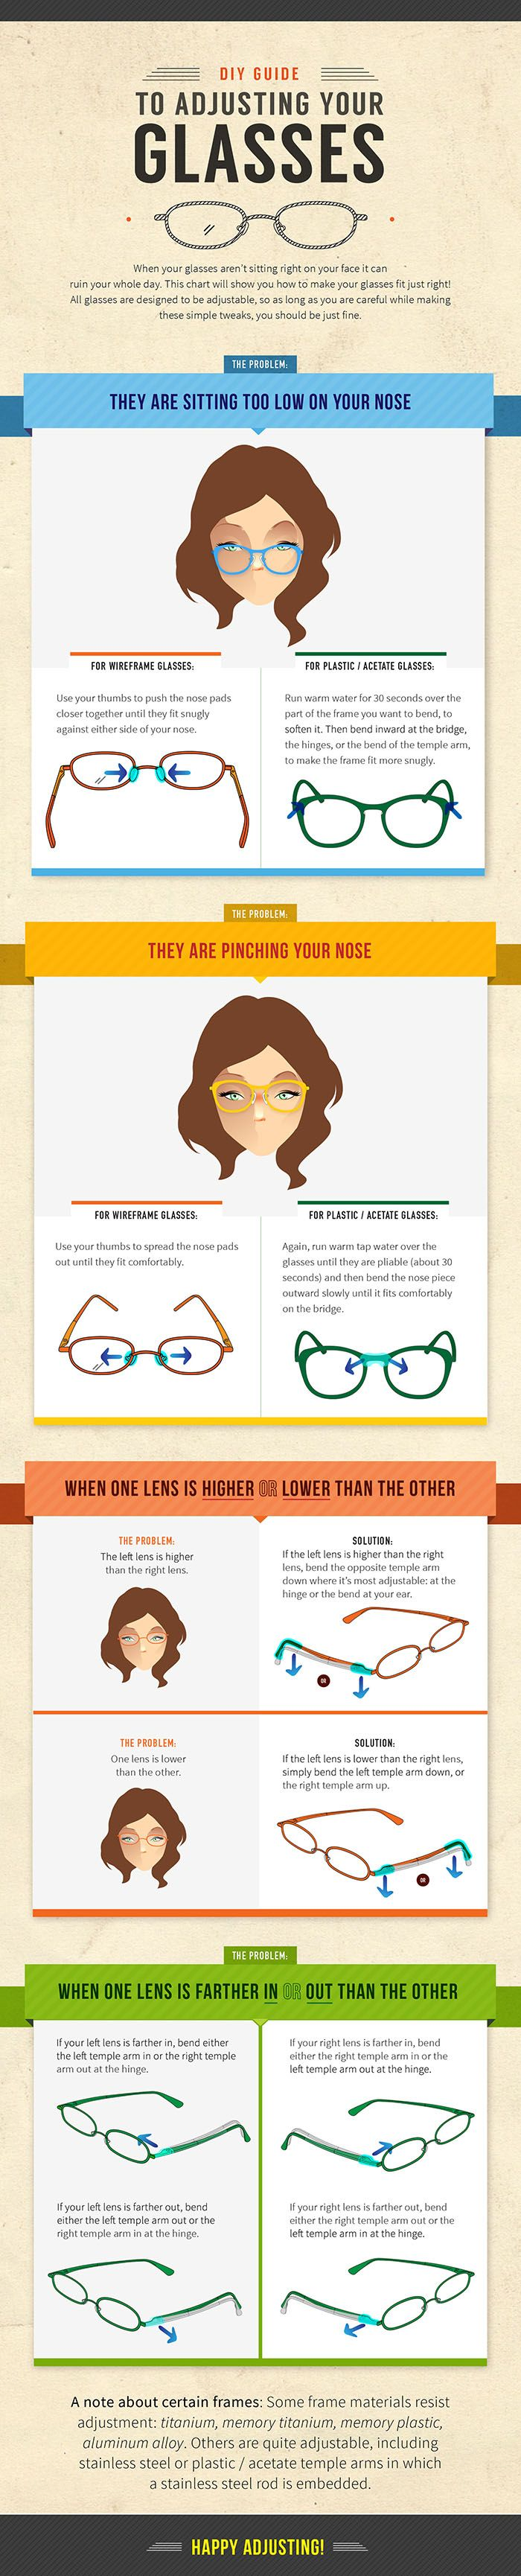 Tips to Adjust Your Glasses at Home | Pinterest | Infographic, Glass ...